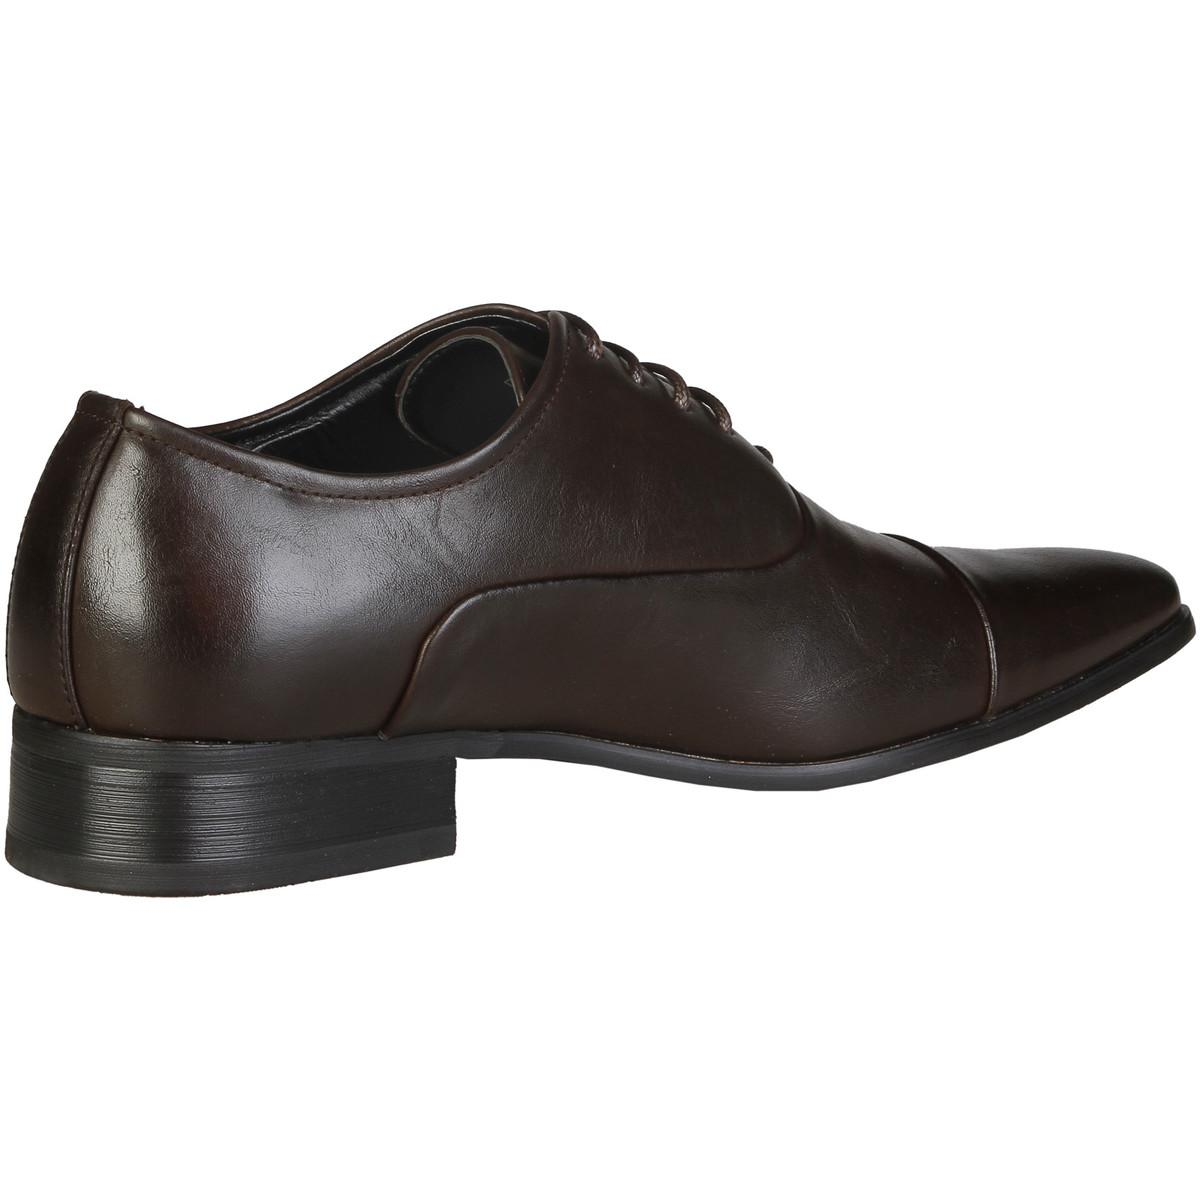 Versace Leather Eymeric Men's Smart / Formal Shoes In Brown for Men